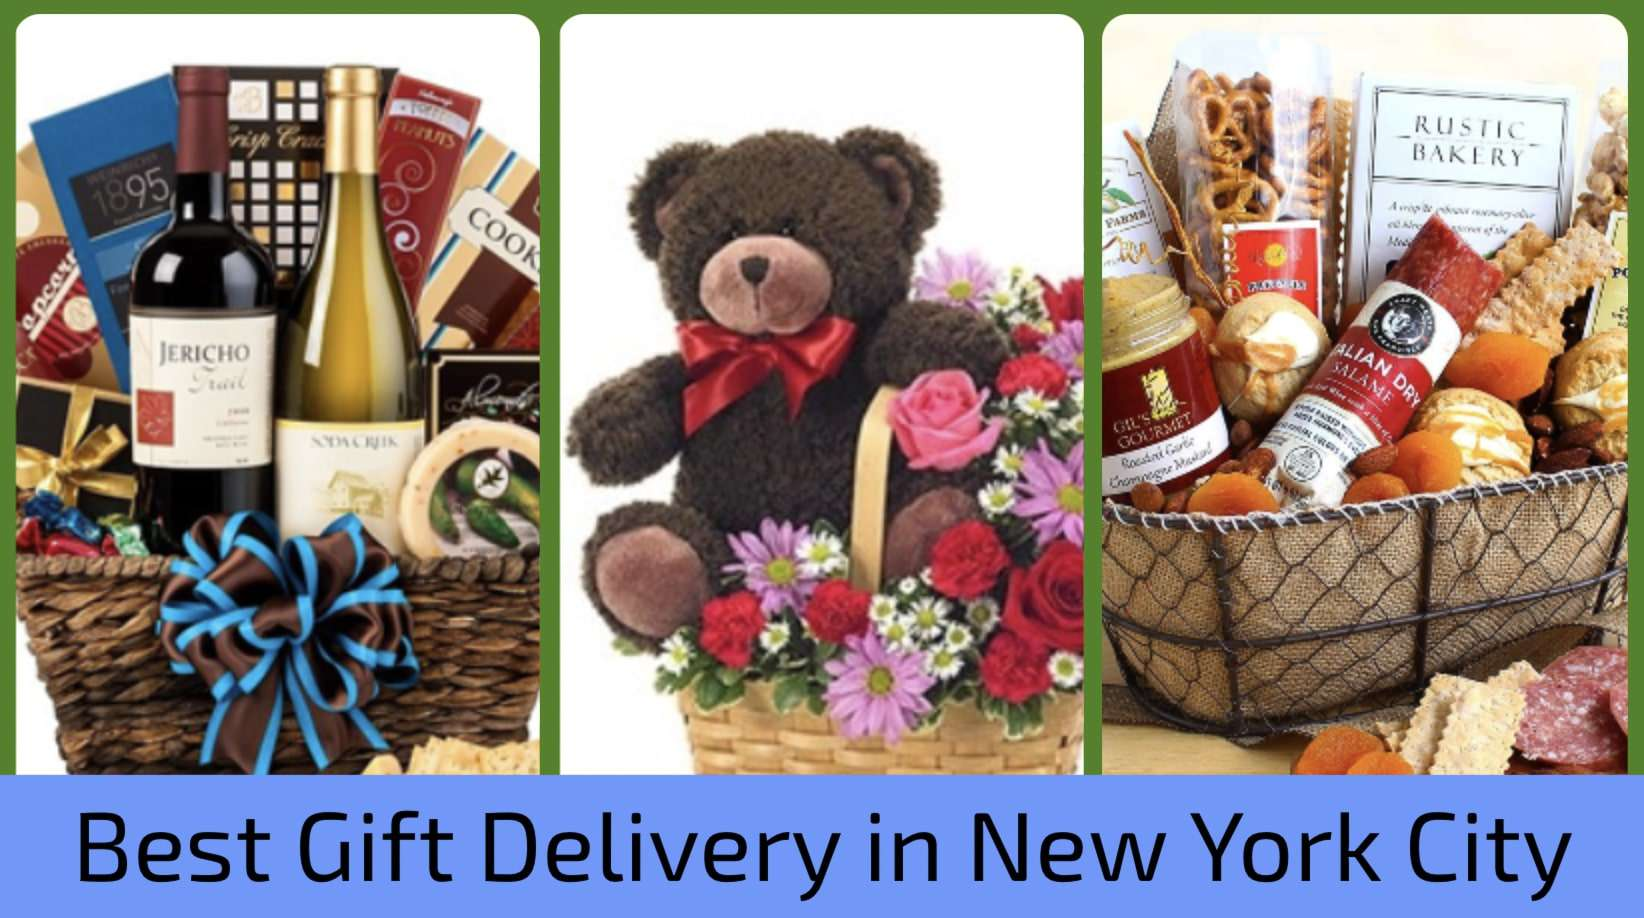 Best Gift Delivery in New York City